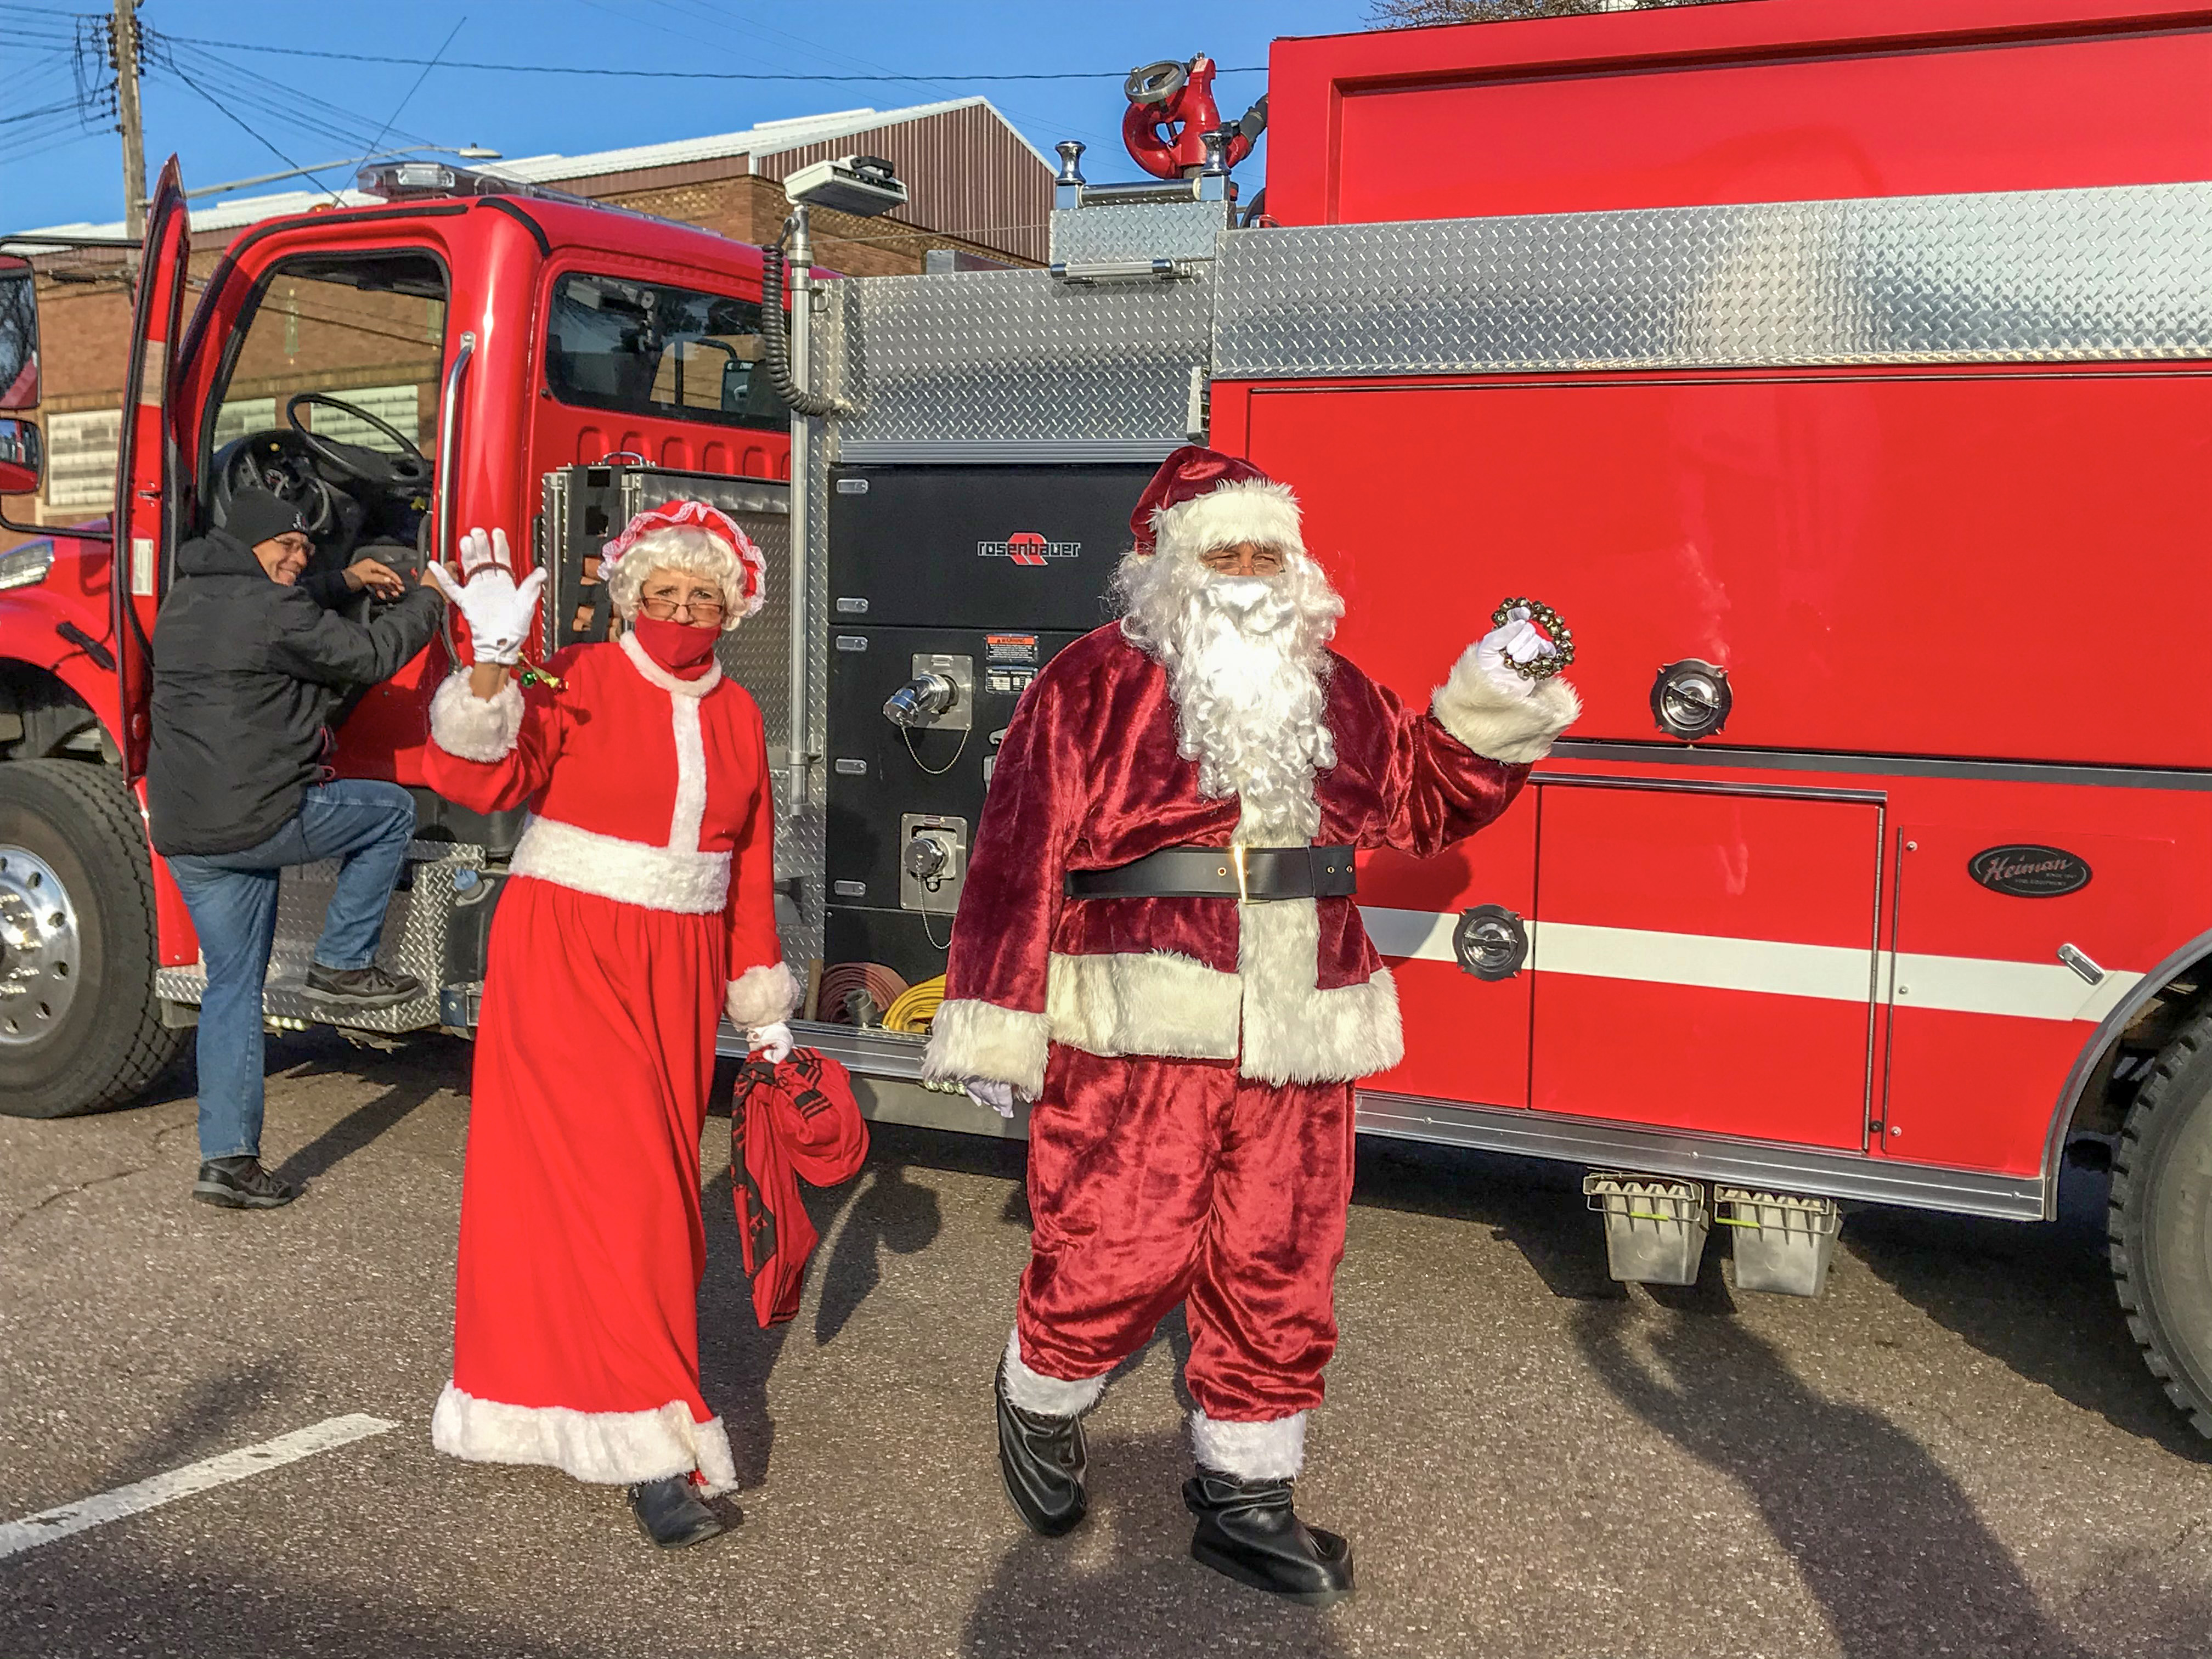 The Claus' arrive on a Gibbon Fire Truck